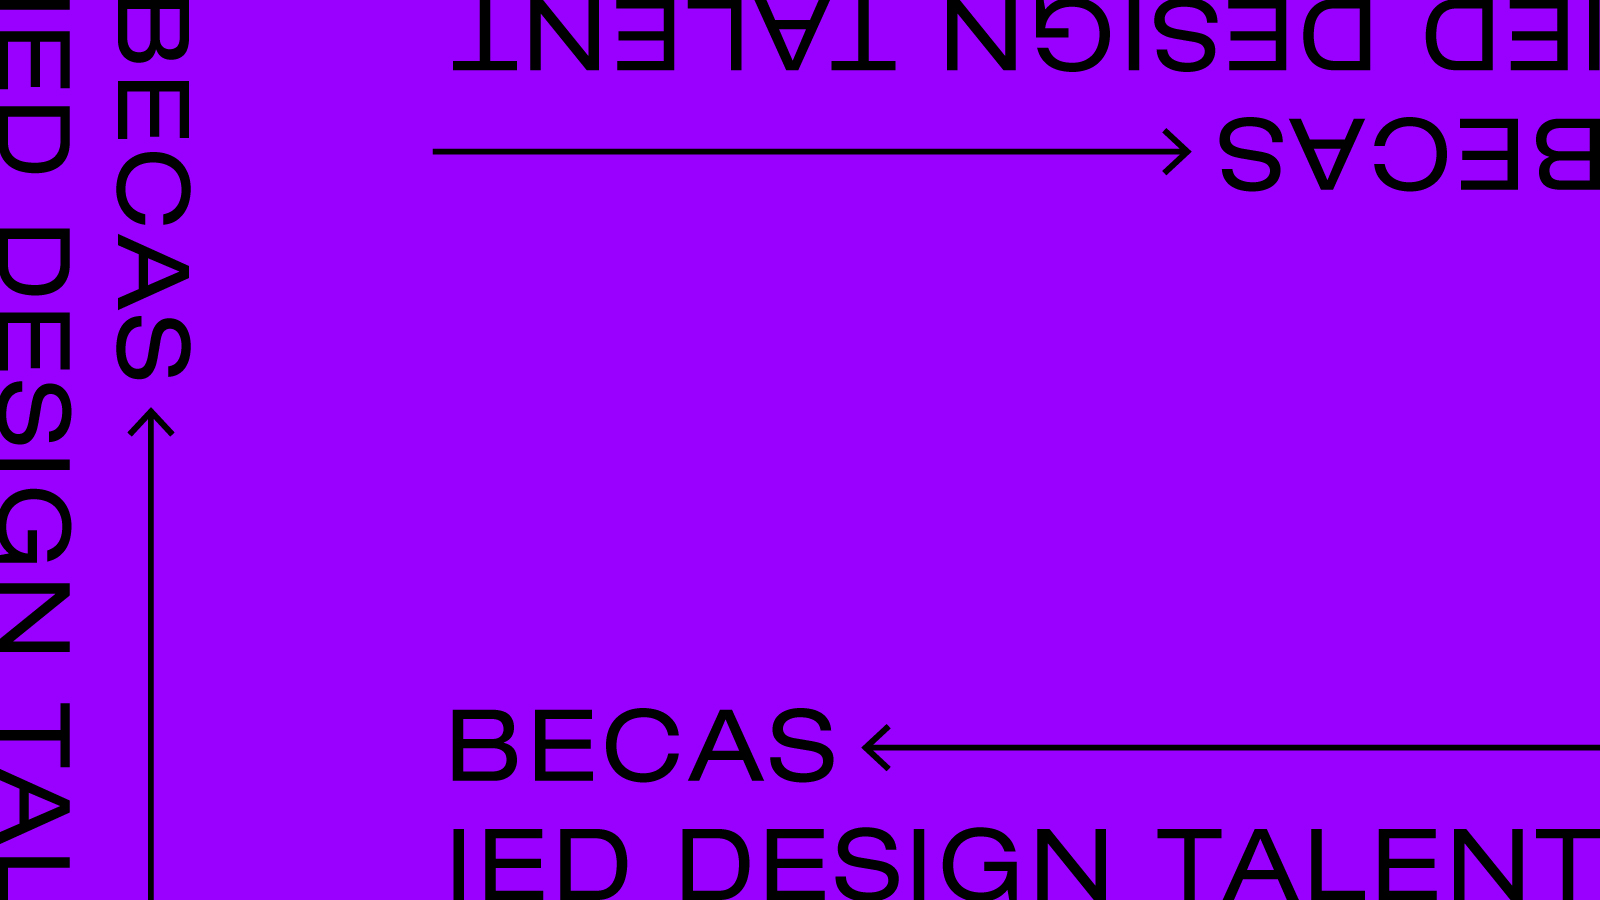 Becas IED Design Talent IED Madrid